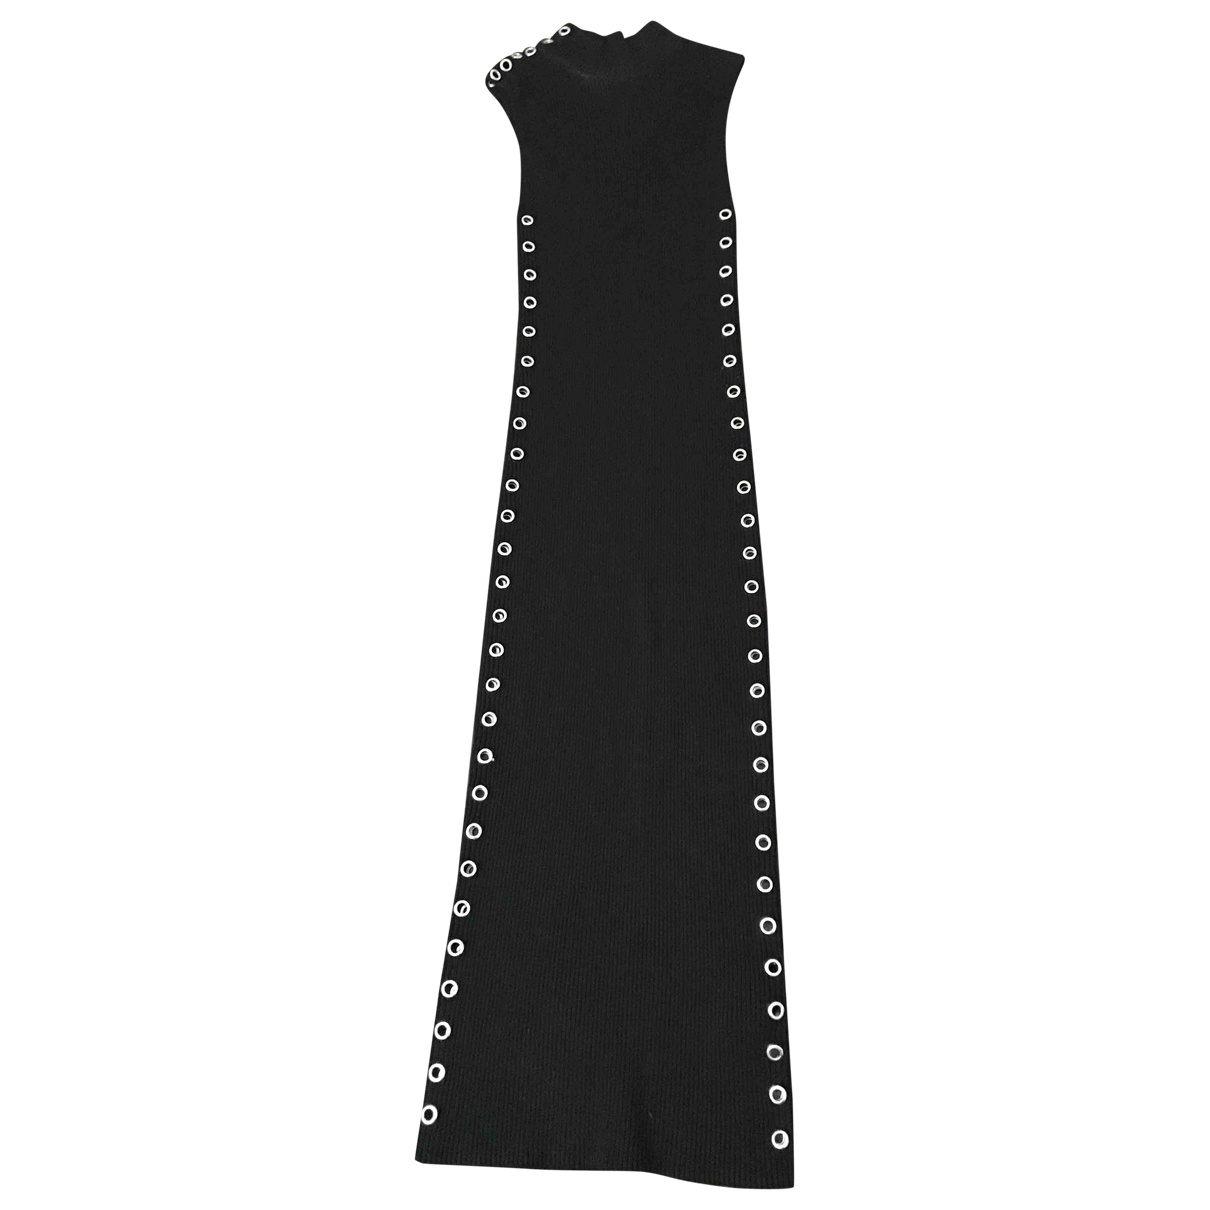 & Stories \N Black dress for Women XS International